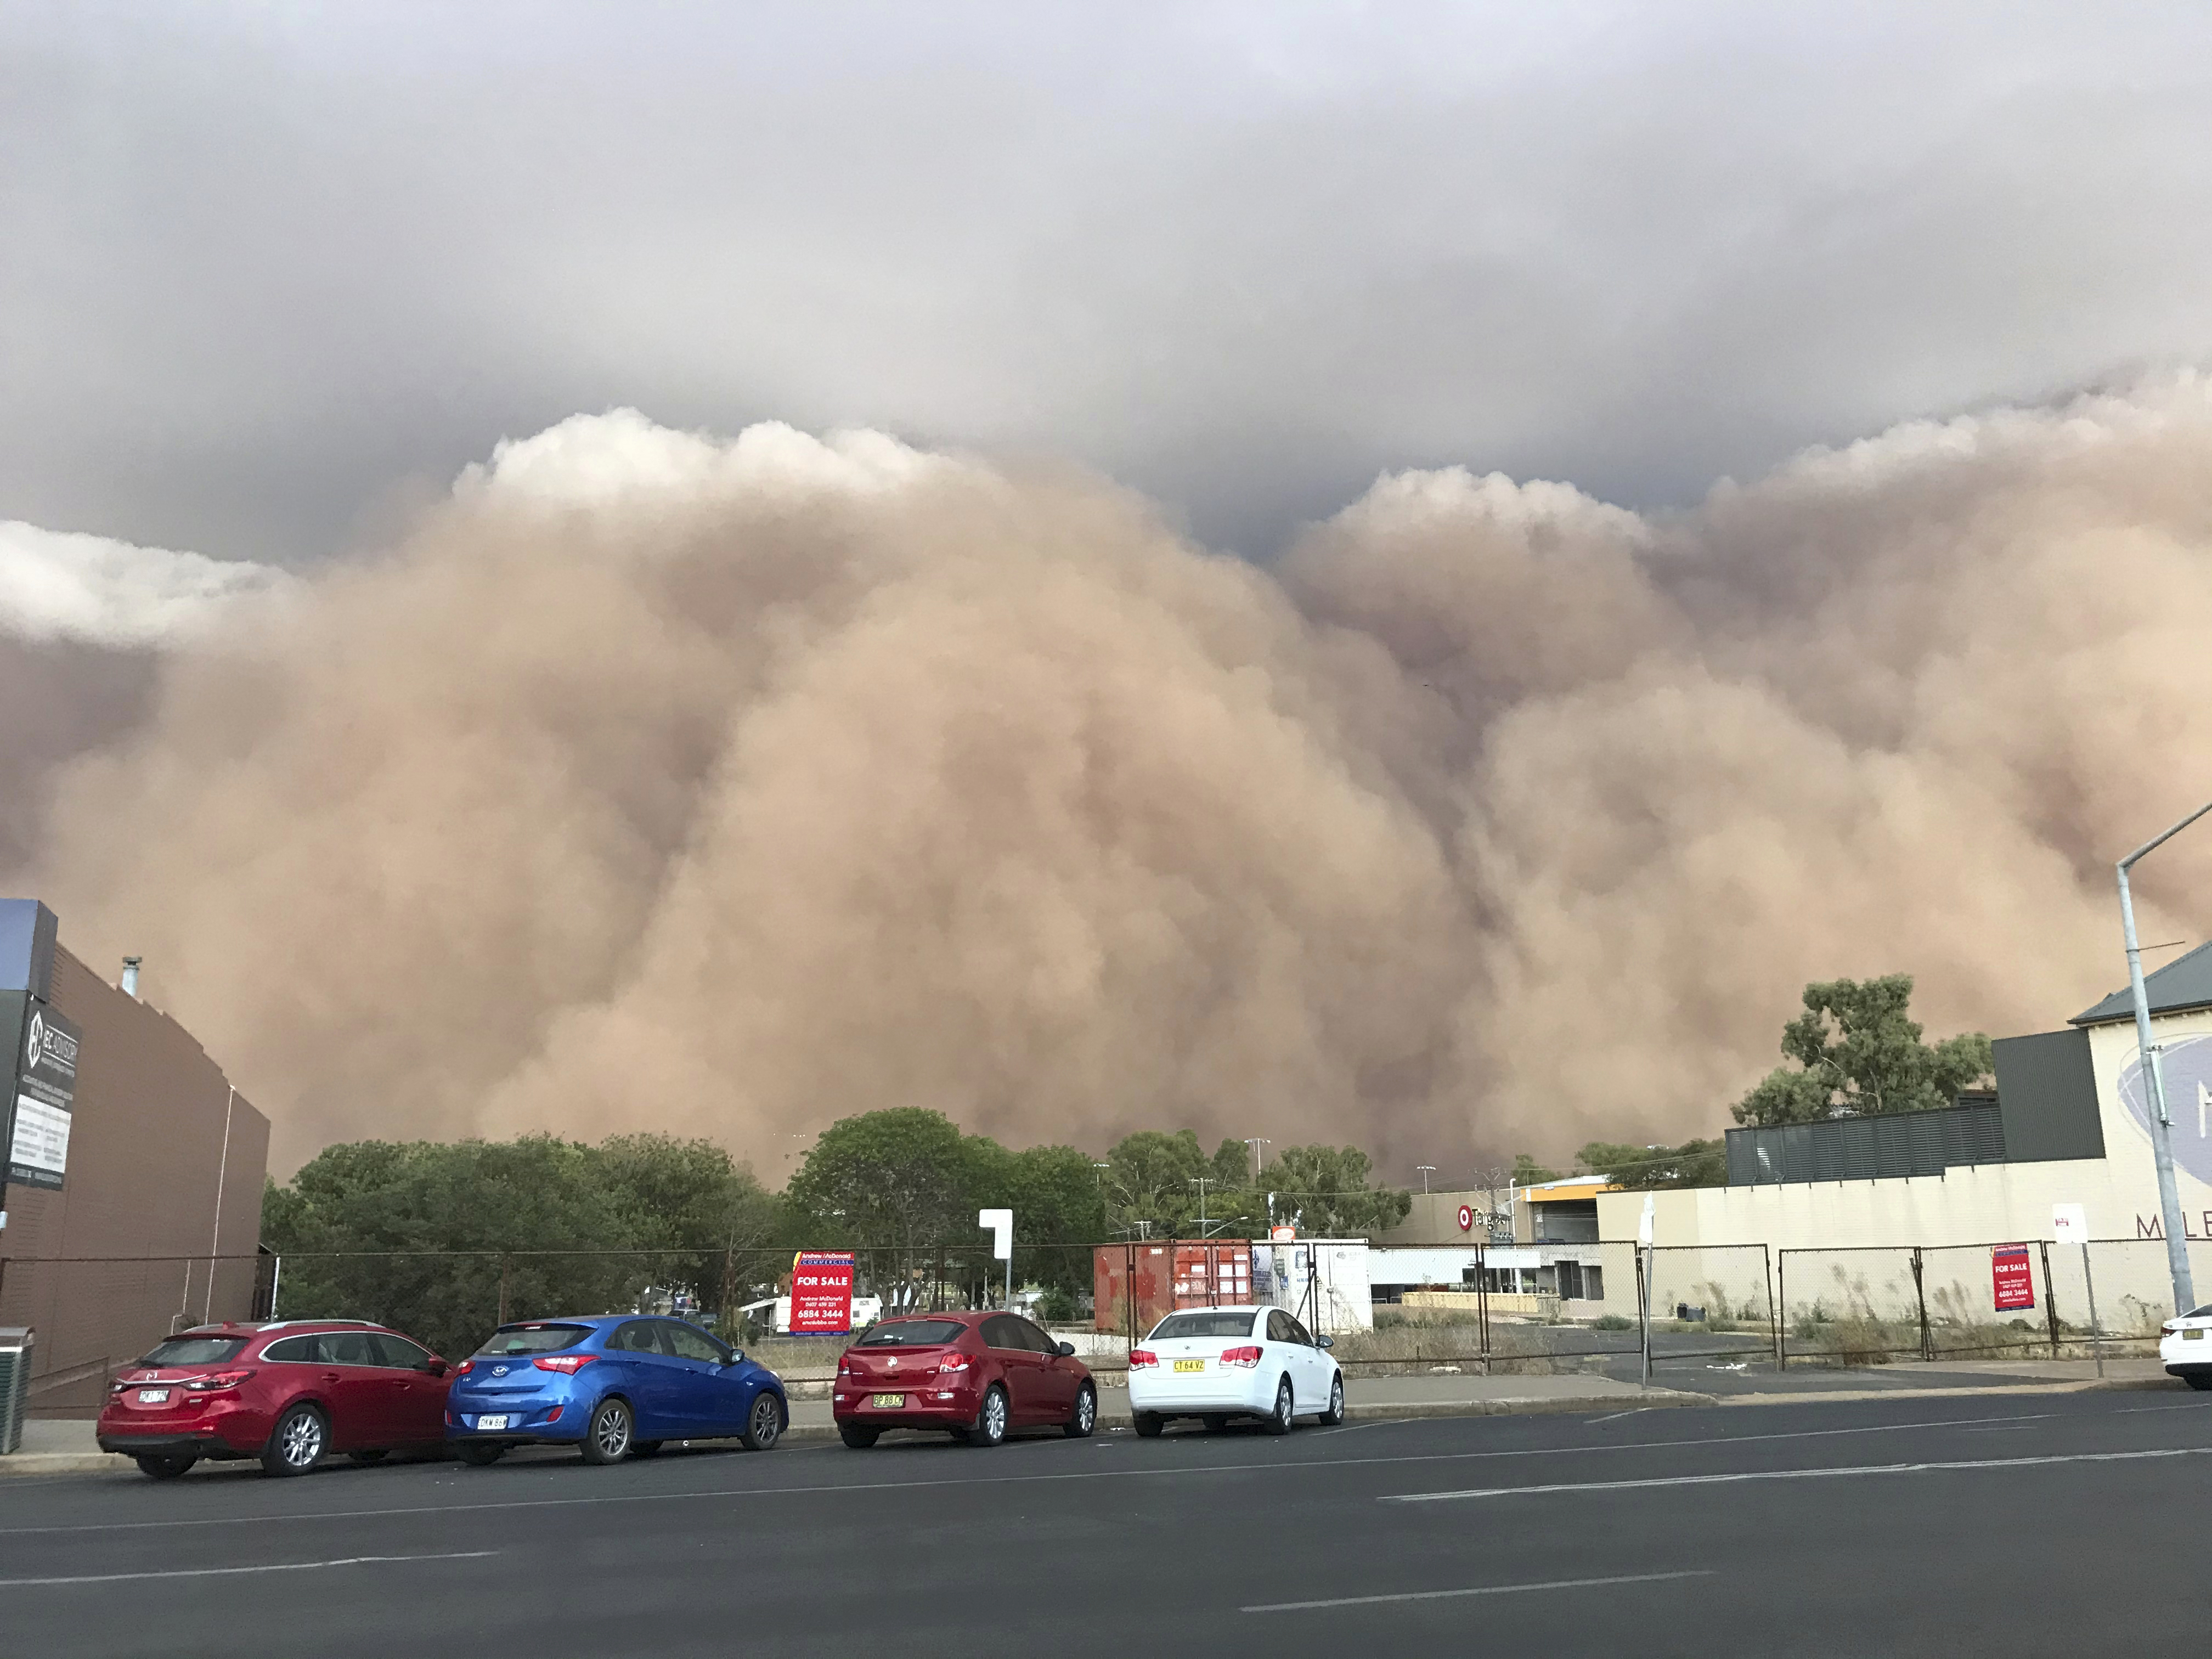 Hail, floods, dust hit Australia amid raging wildfires